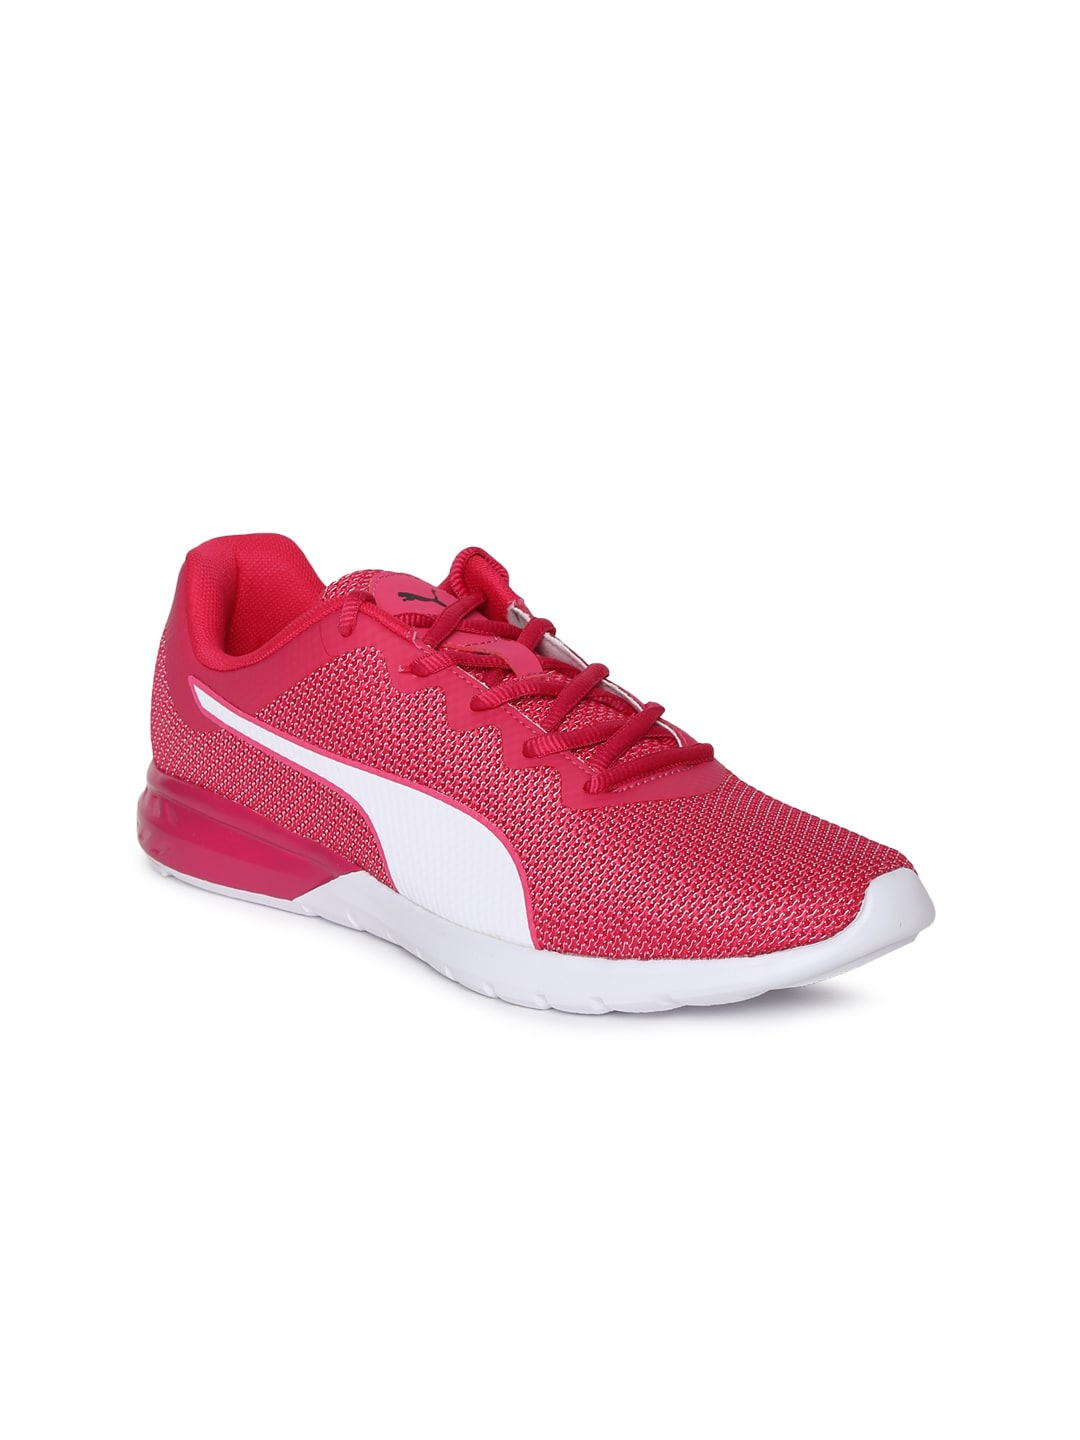 Puma Sports Shoes | Buy Puma Sports Shoes for Men & Women Online in India at Best Price